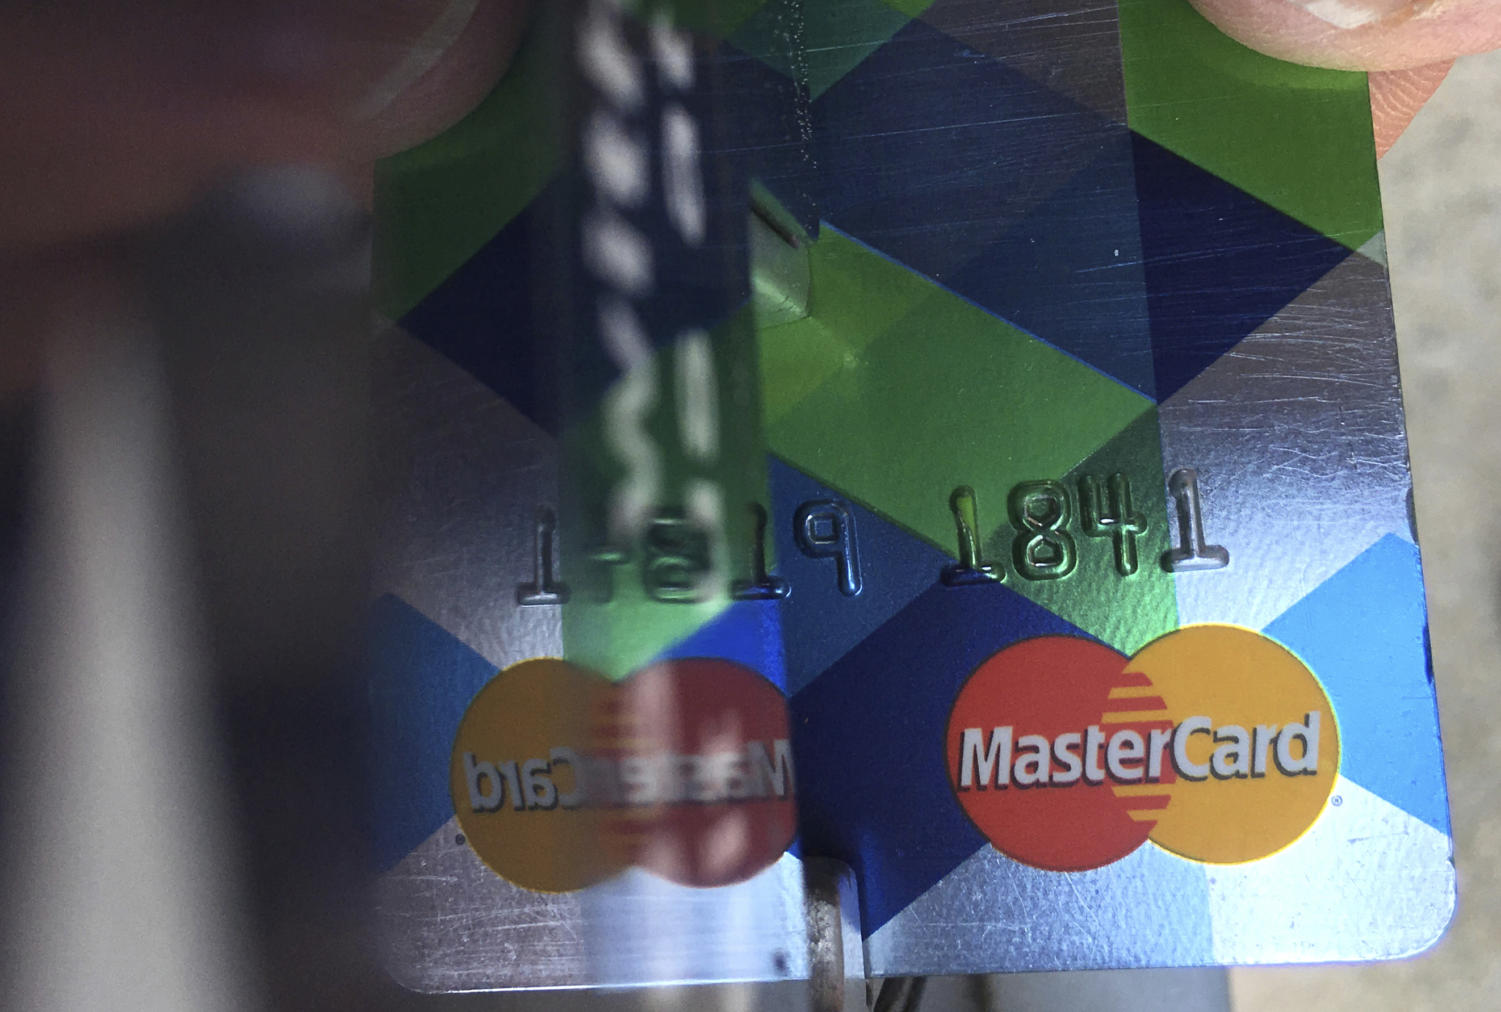 FILE - In this June 15, 2017, file photo, a customer inserts a Mastercard credit card to pay for parking in Haverhill, Mass. Mastercard rolled out a digital trade platform Wednesday, Sept. 12, 2018, designed to make it easier for companies to do business around the world. (AP Photo/Elise Amendola, File)